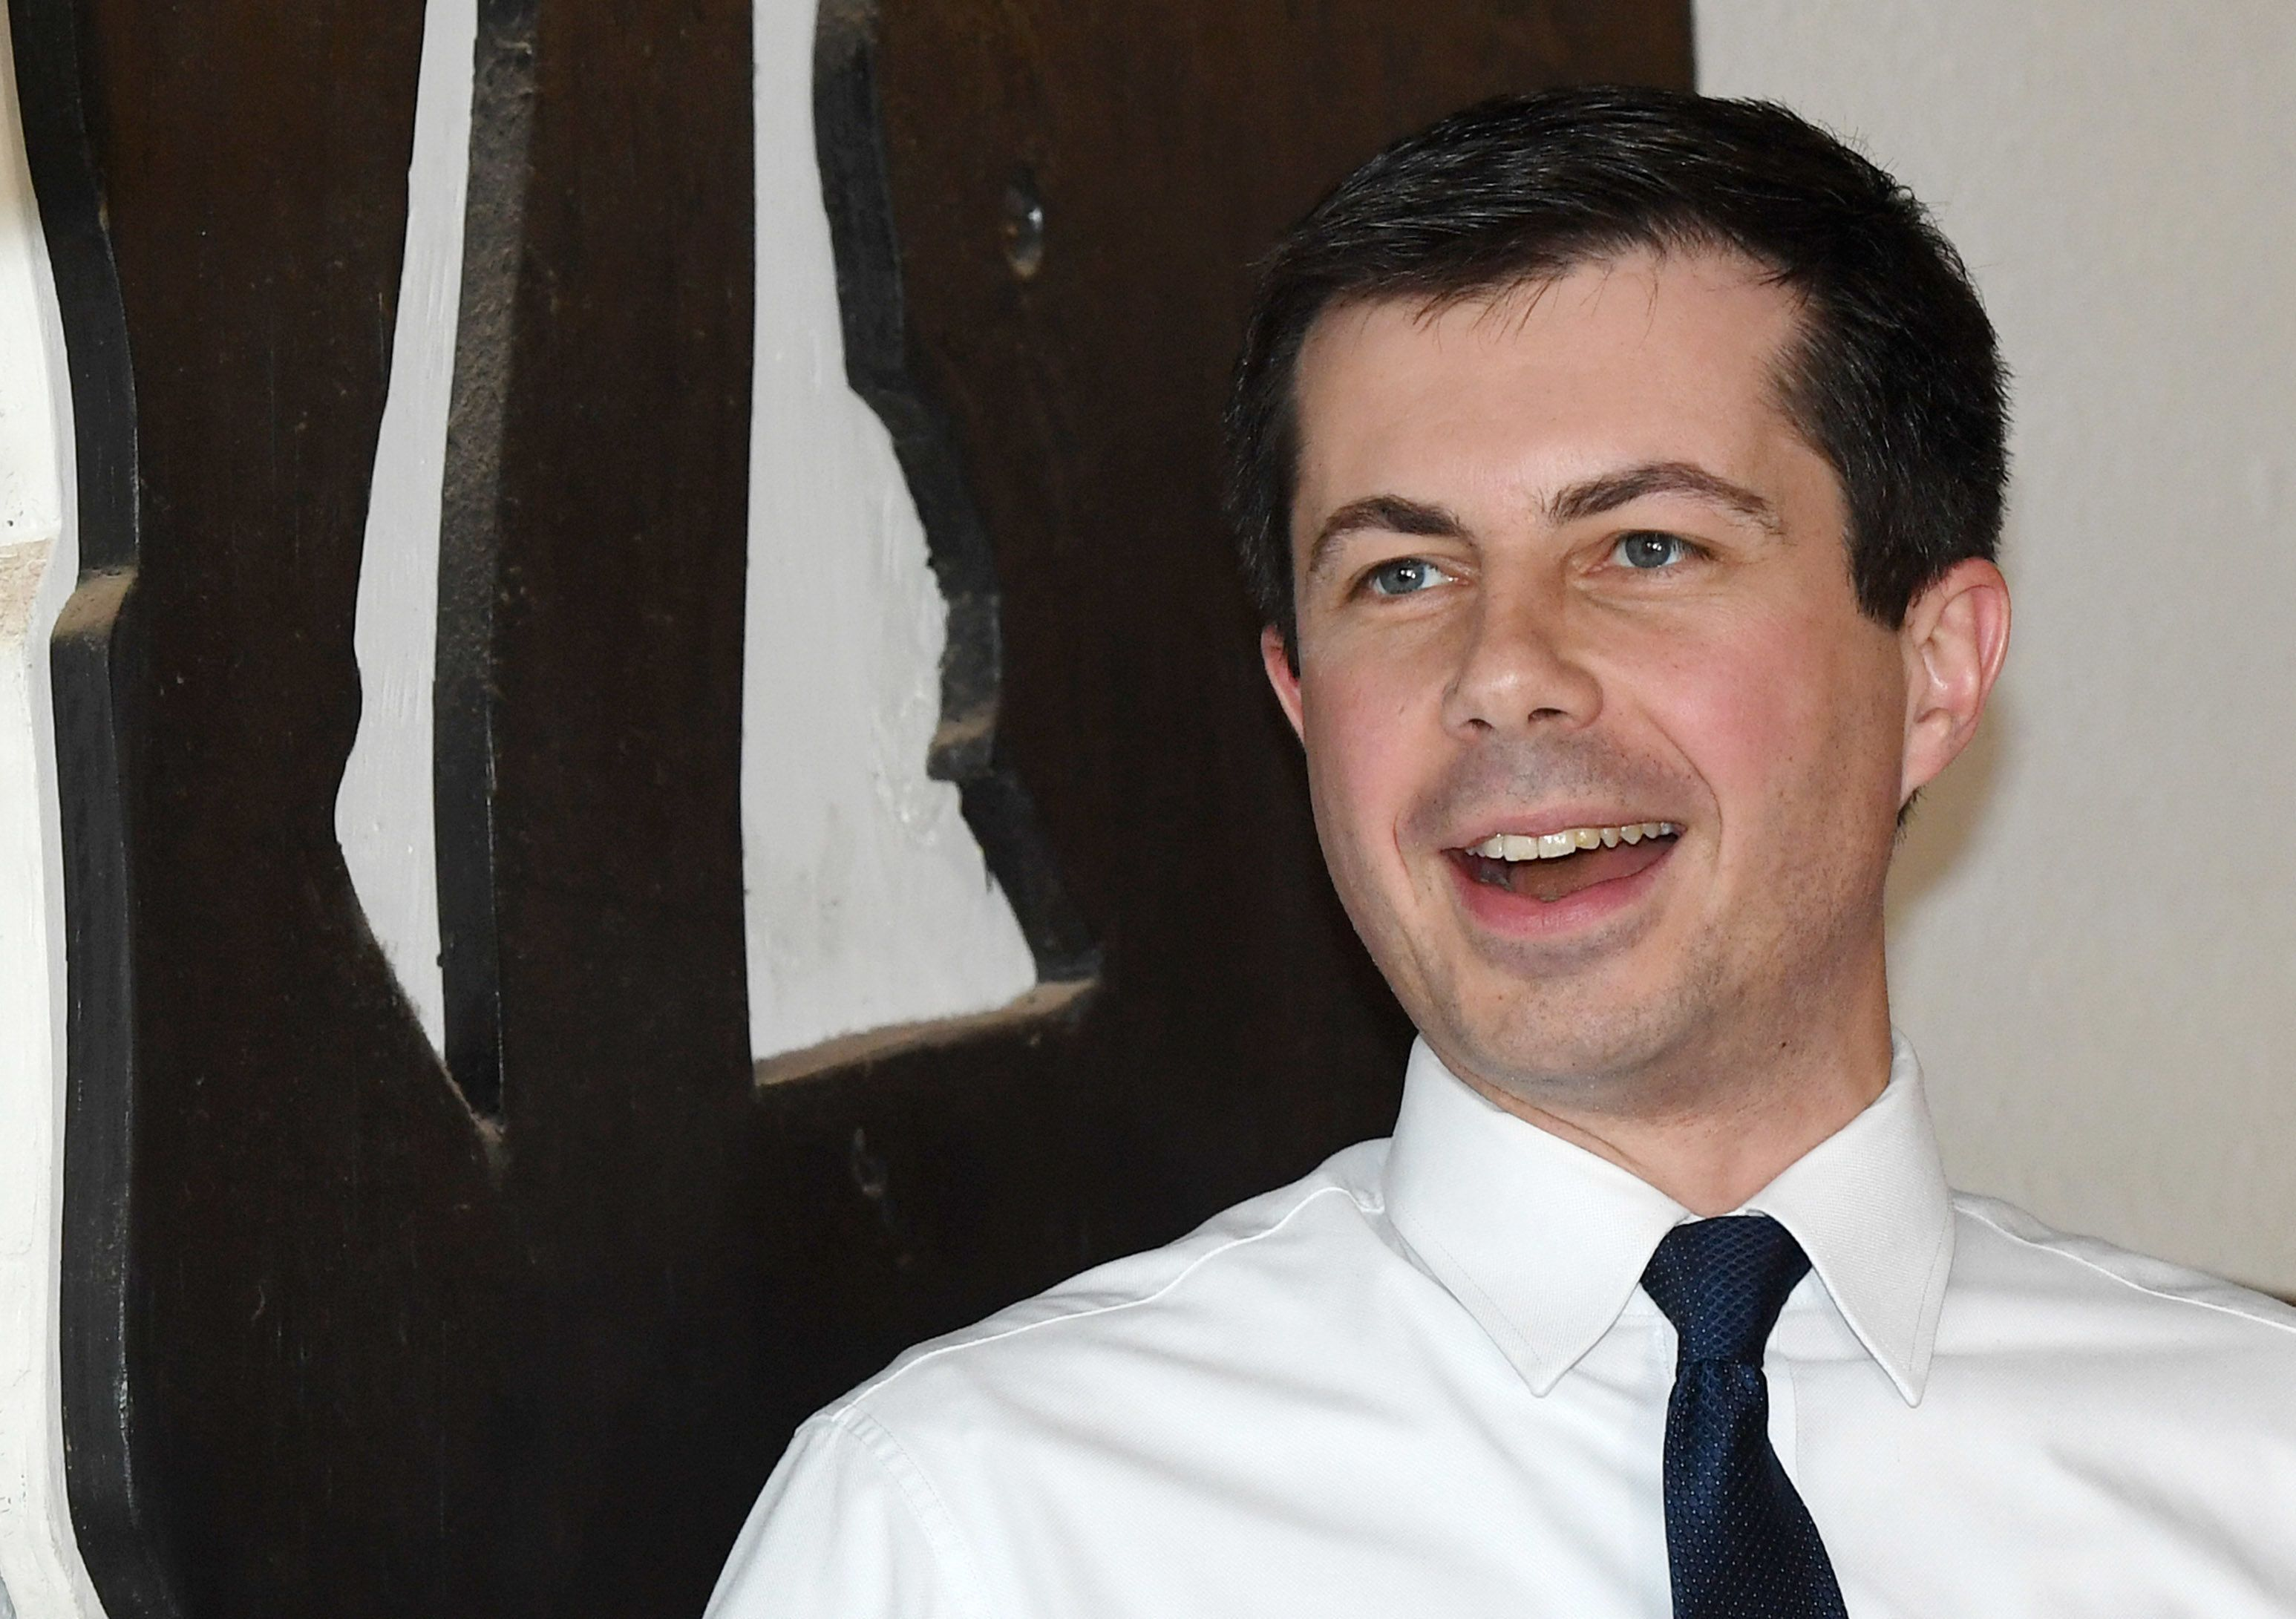 Conservatives Are Trying To Claim Pete Buttigieg Isn't Actually A Christian